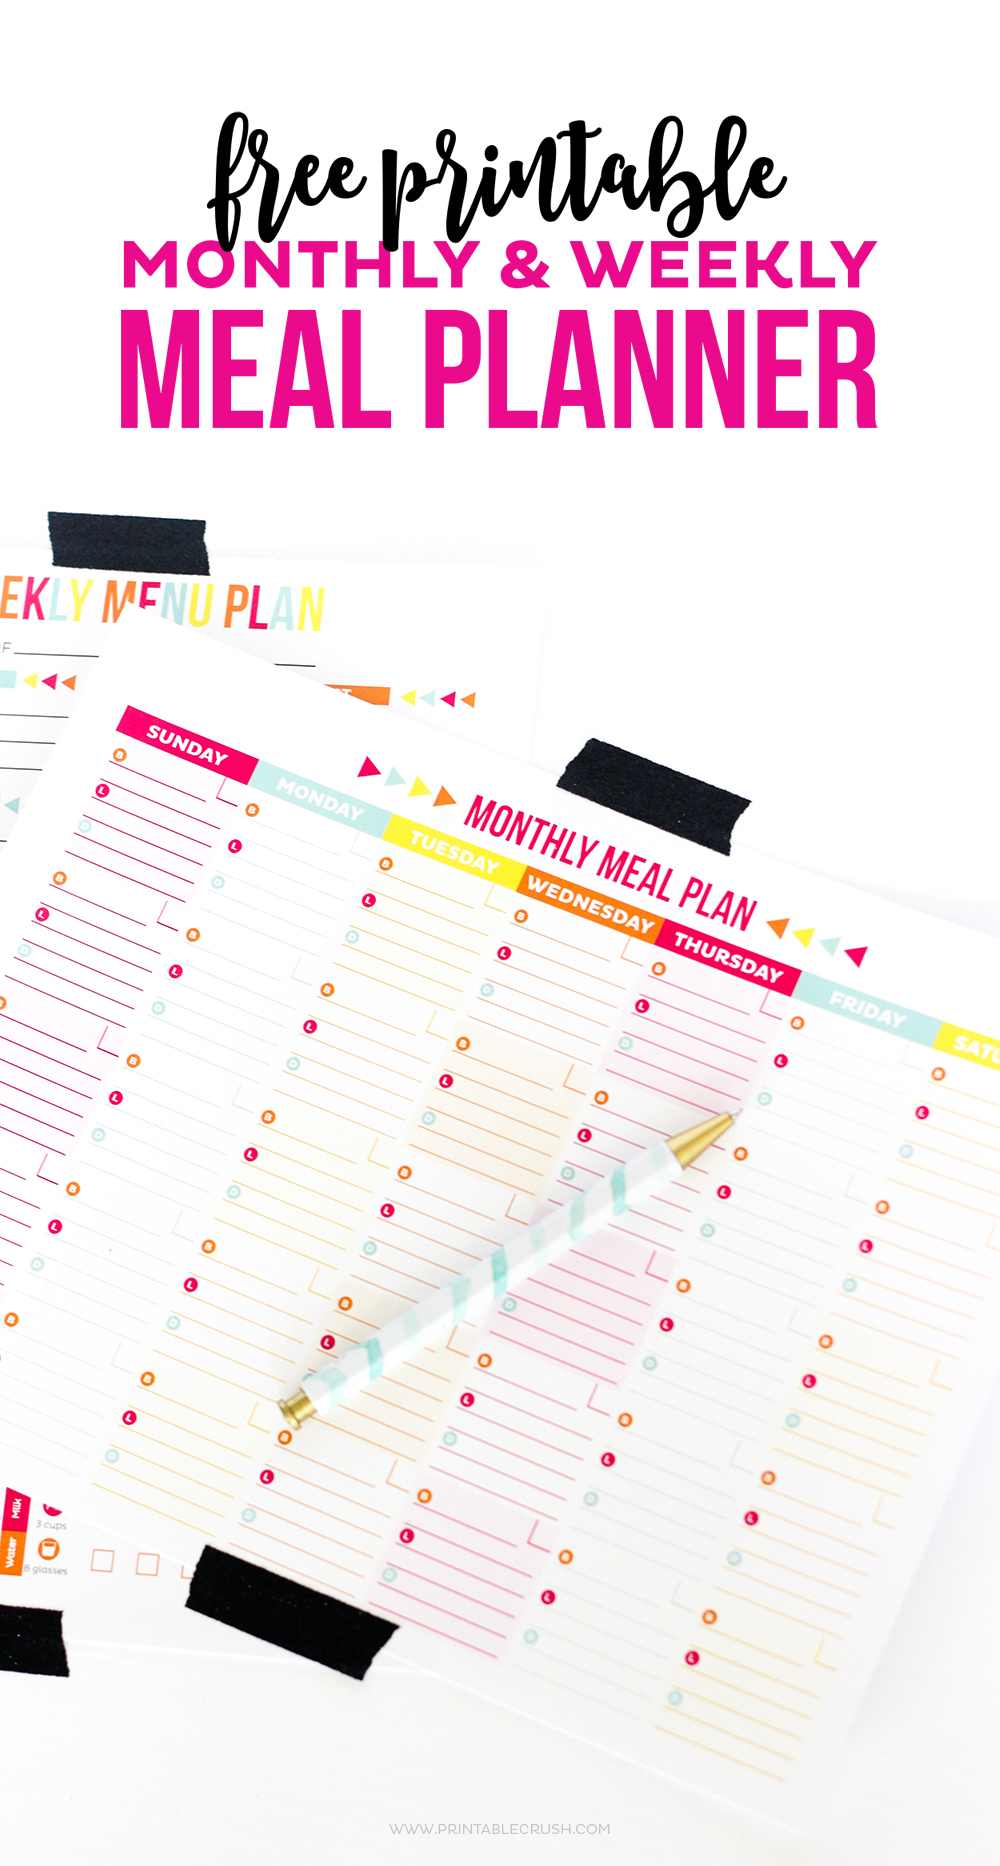 Use this FREE Printable Meal Planner to keep track of your menu plan and health goals! Includes printables for monthly and weekly tracking!